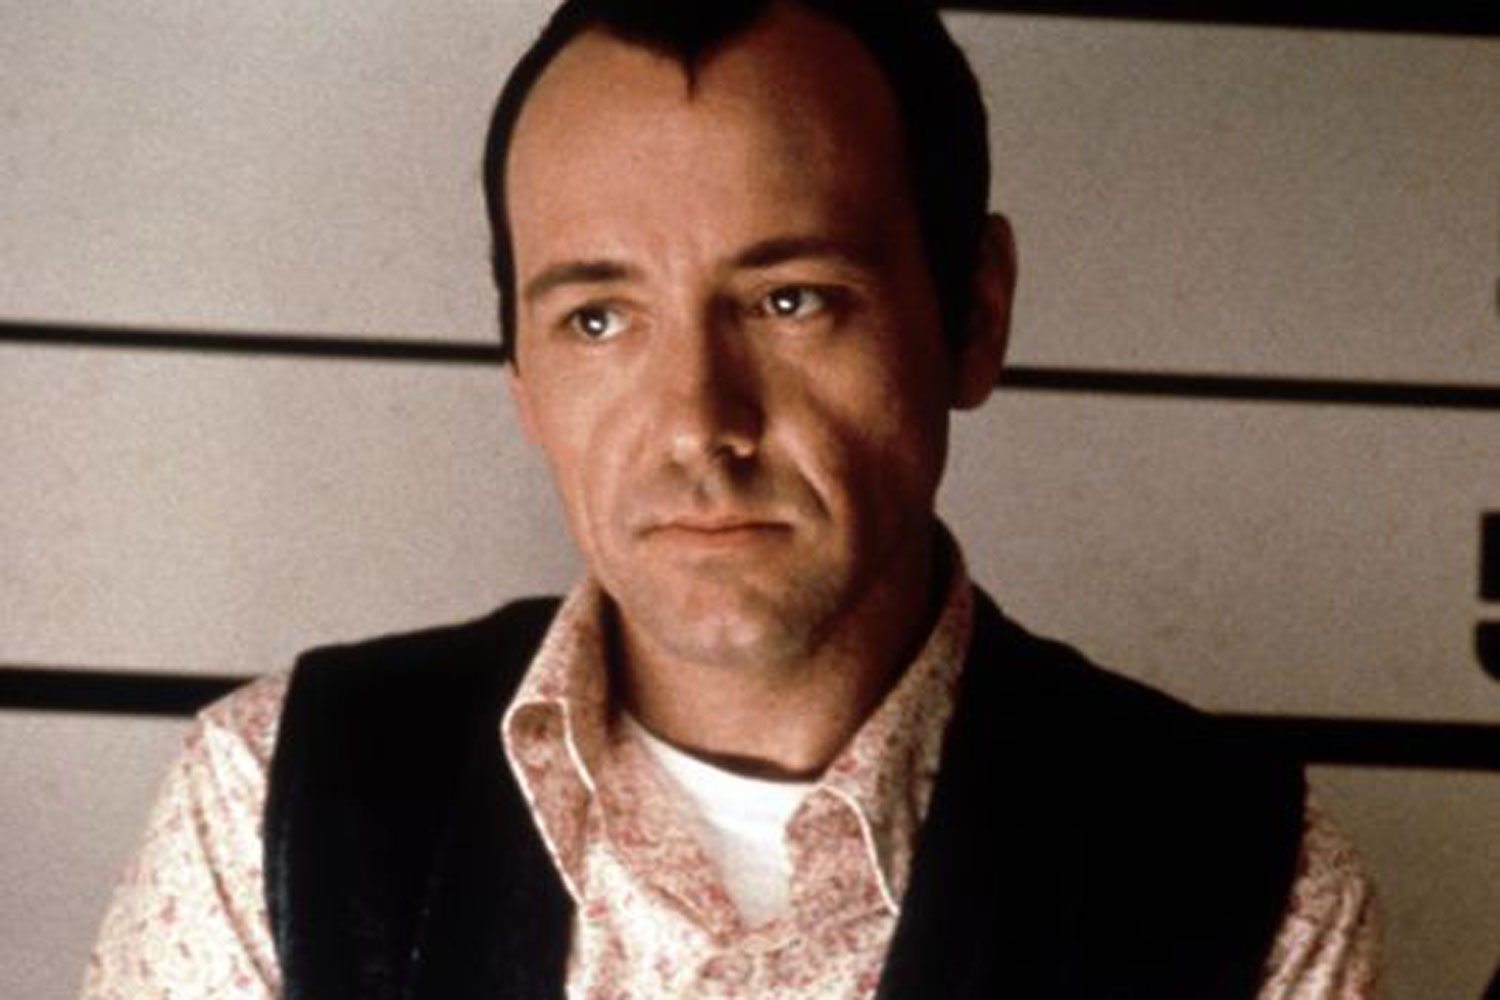 Kevin Spacey as Verbal Kint.